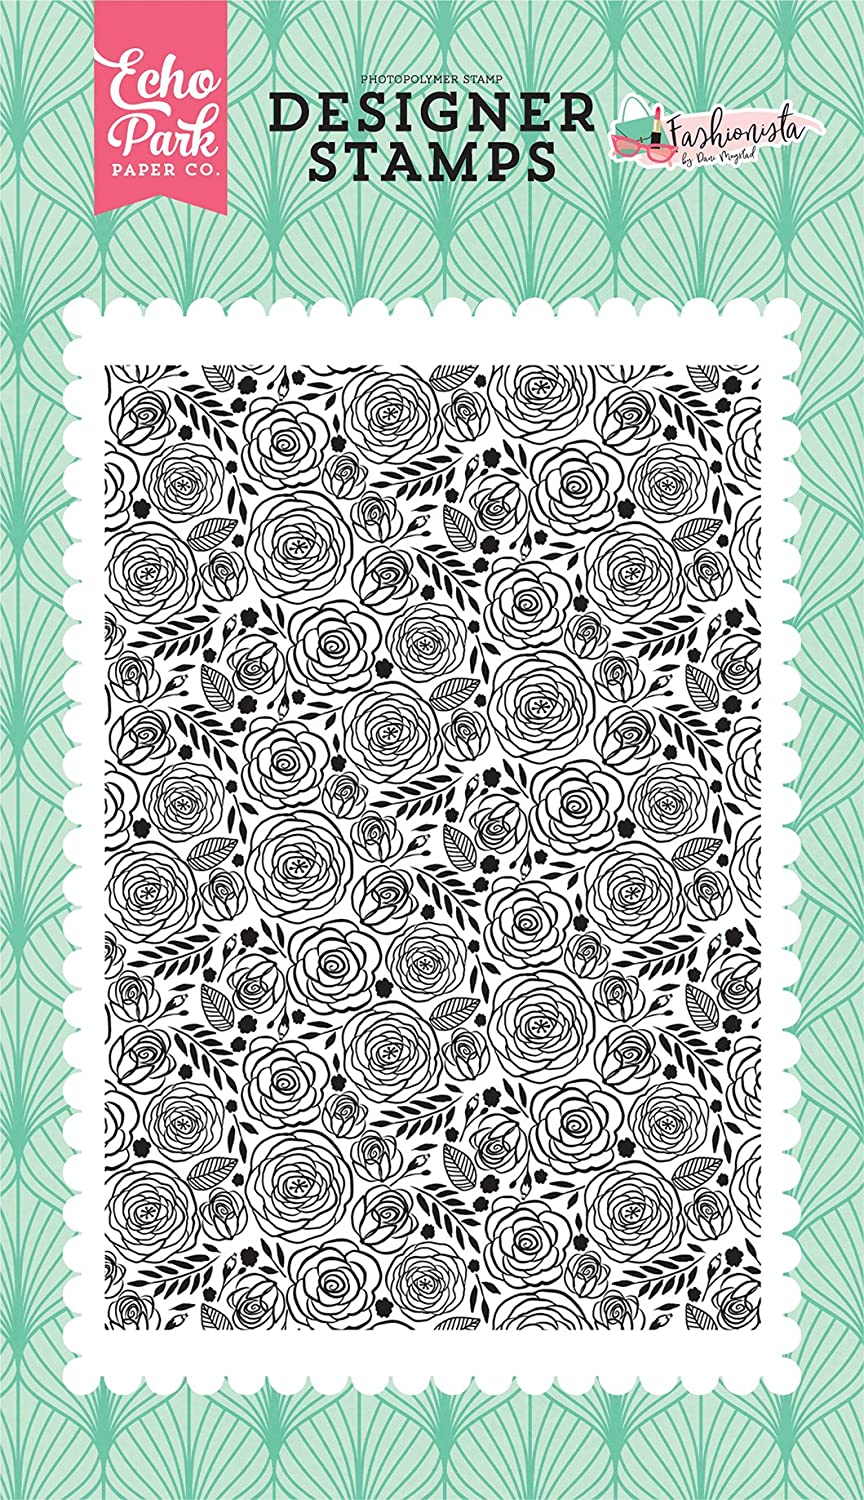 Echo Park Paper Company Dainty Rose Stamp